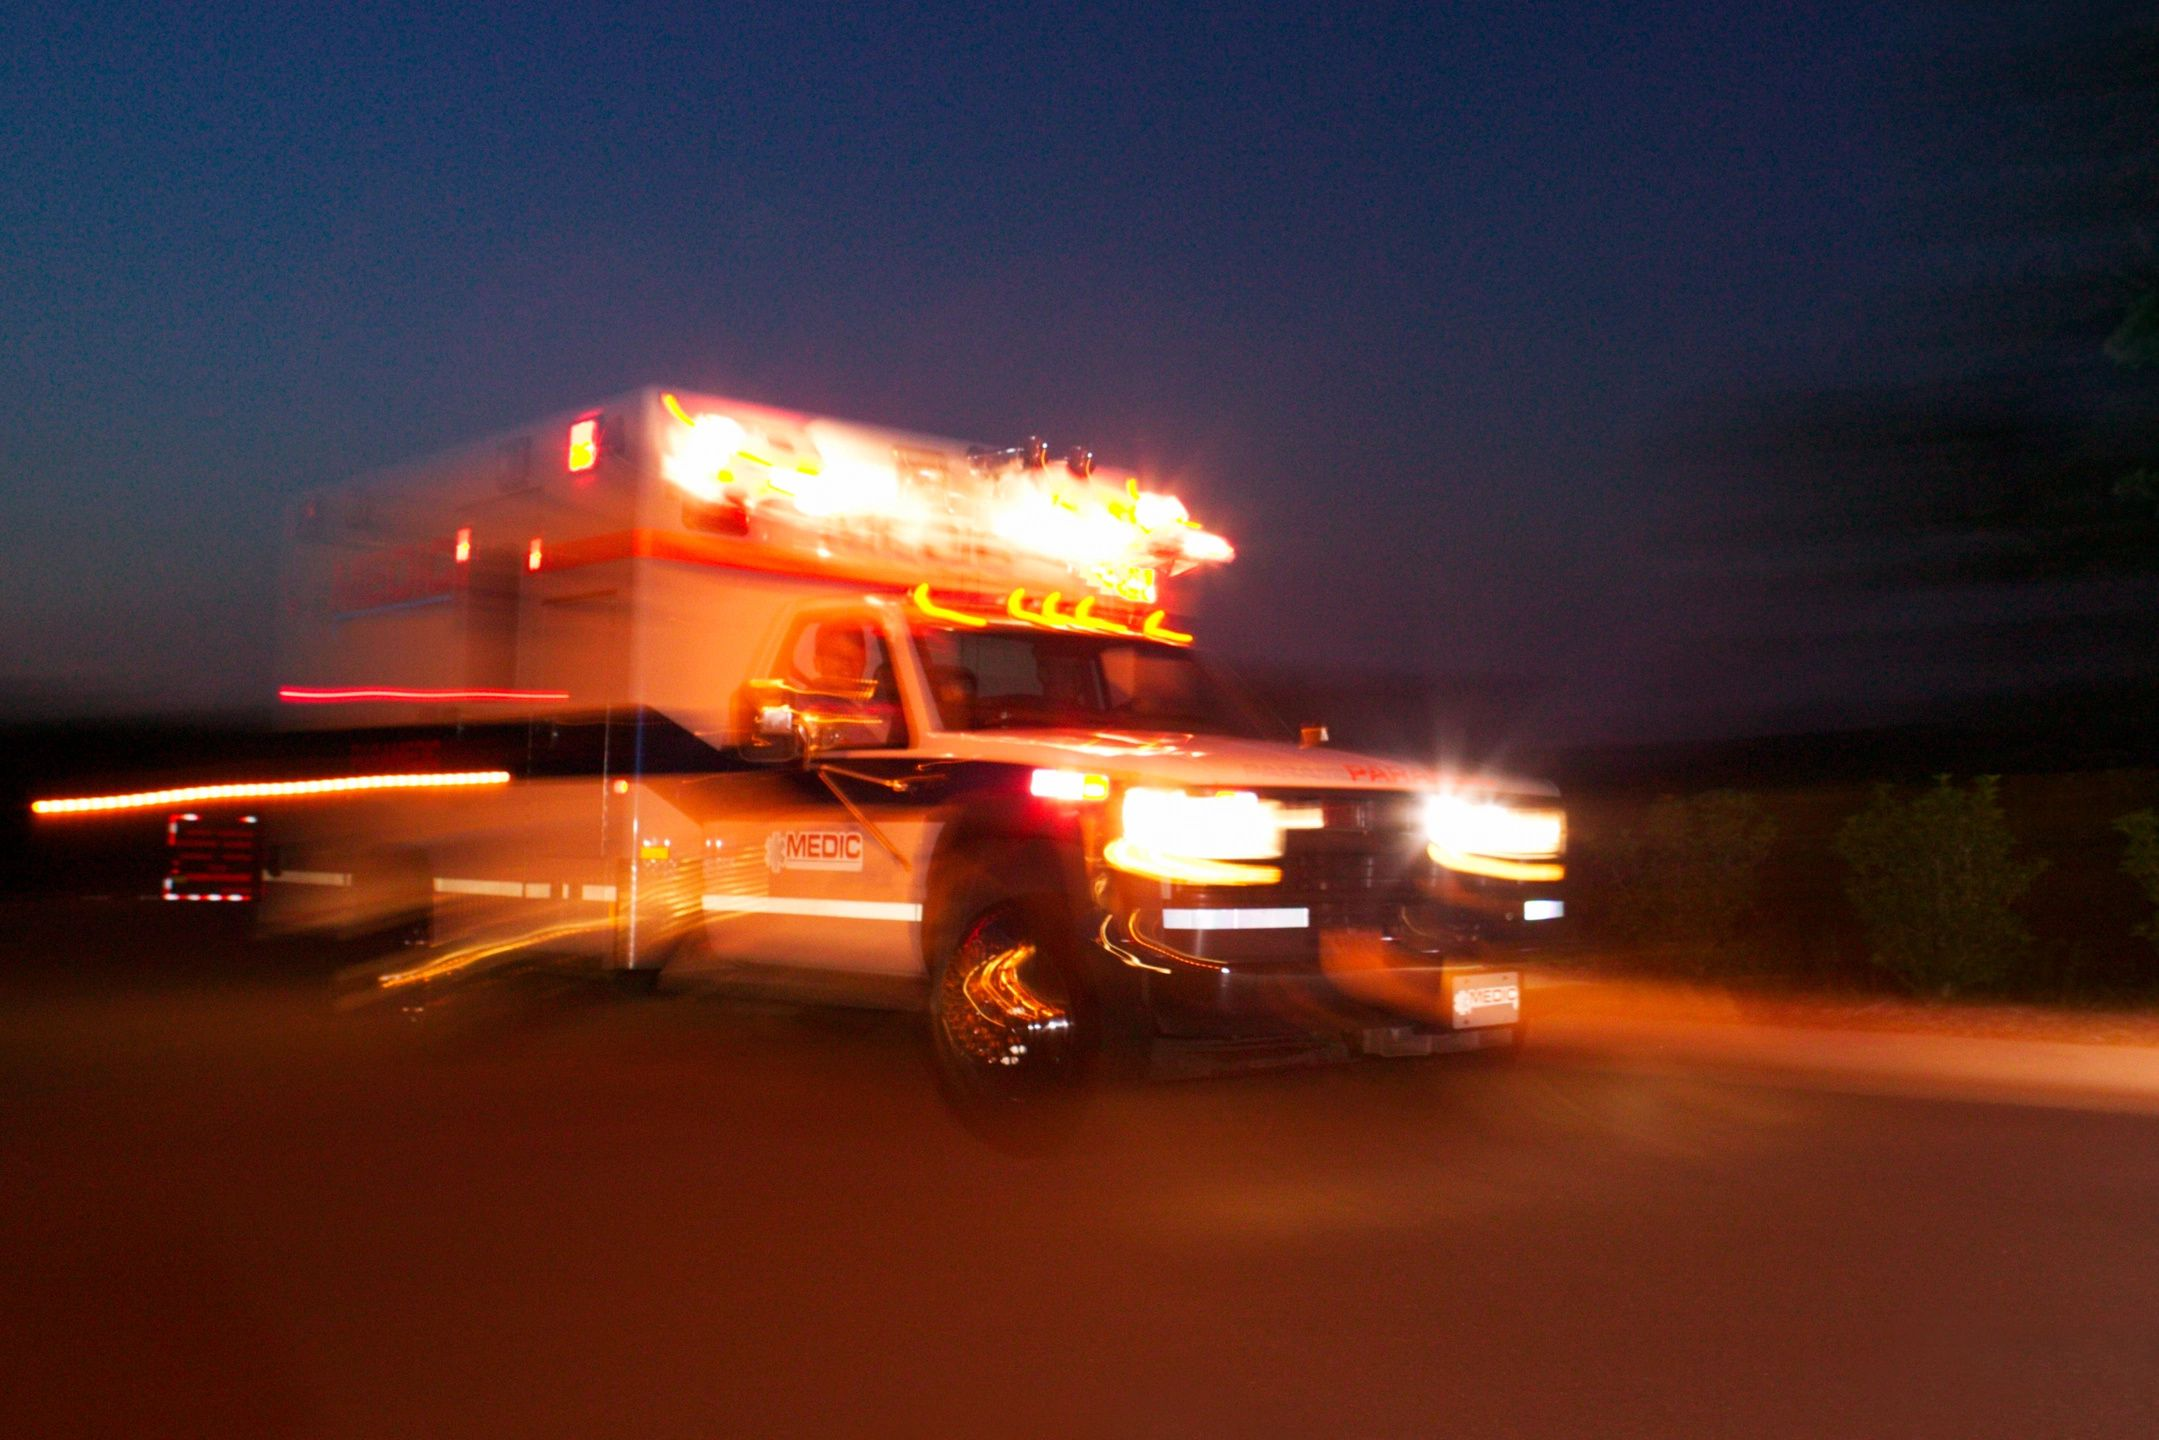 Ambulance in Woodlake gains traction